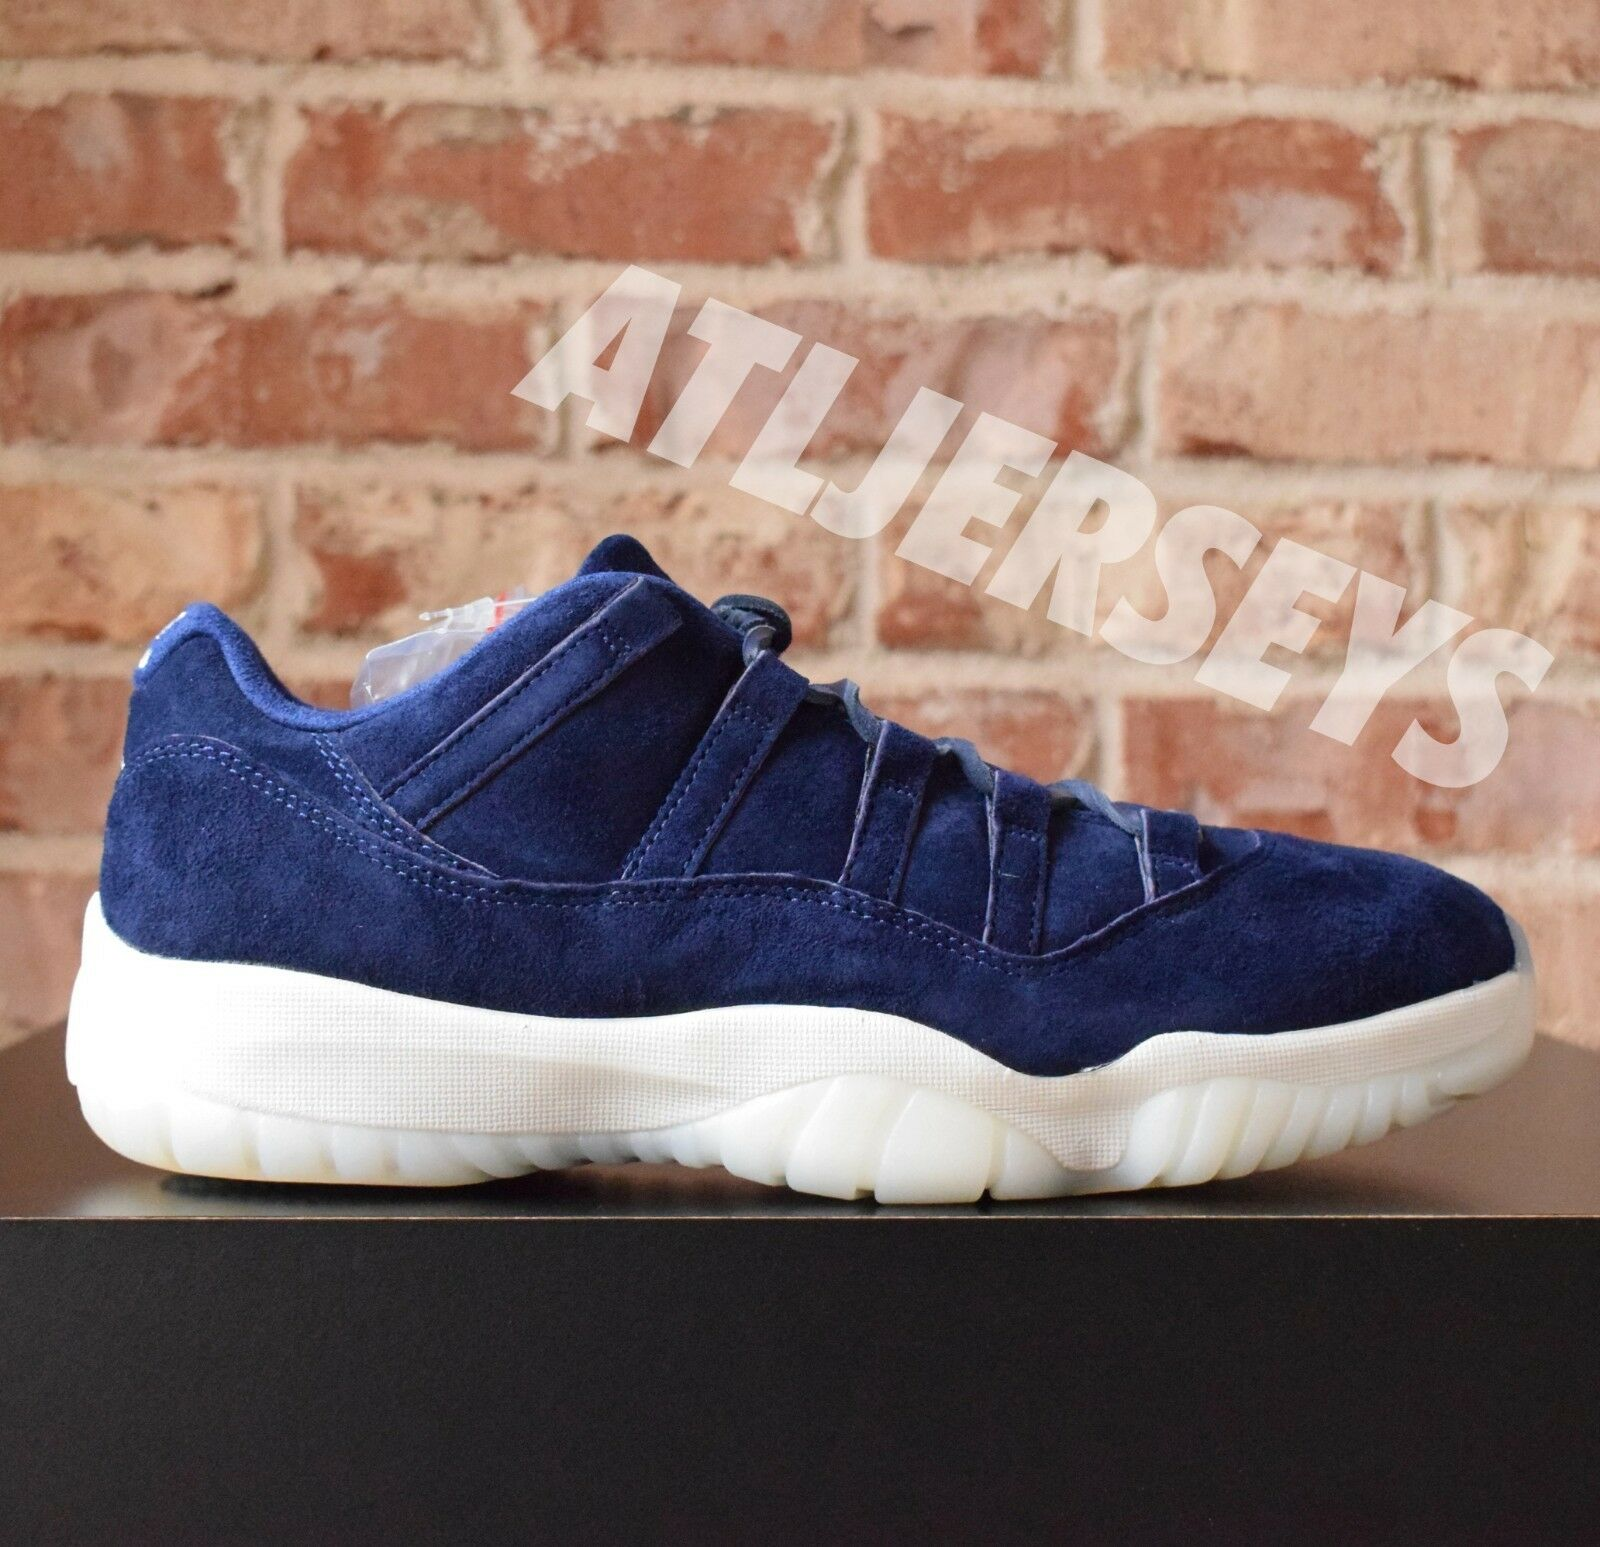 95af3f9b155 Nike Air Jordan 11 XI Retro Low Binary Derek Jeter RE2PECT Binary Low Blue  AV2187-